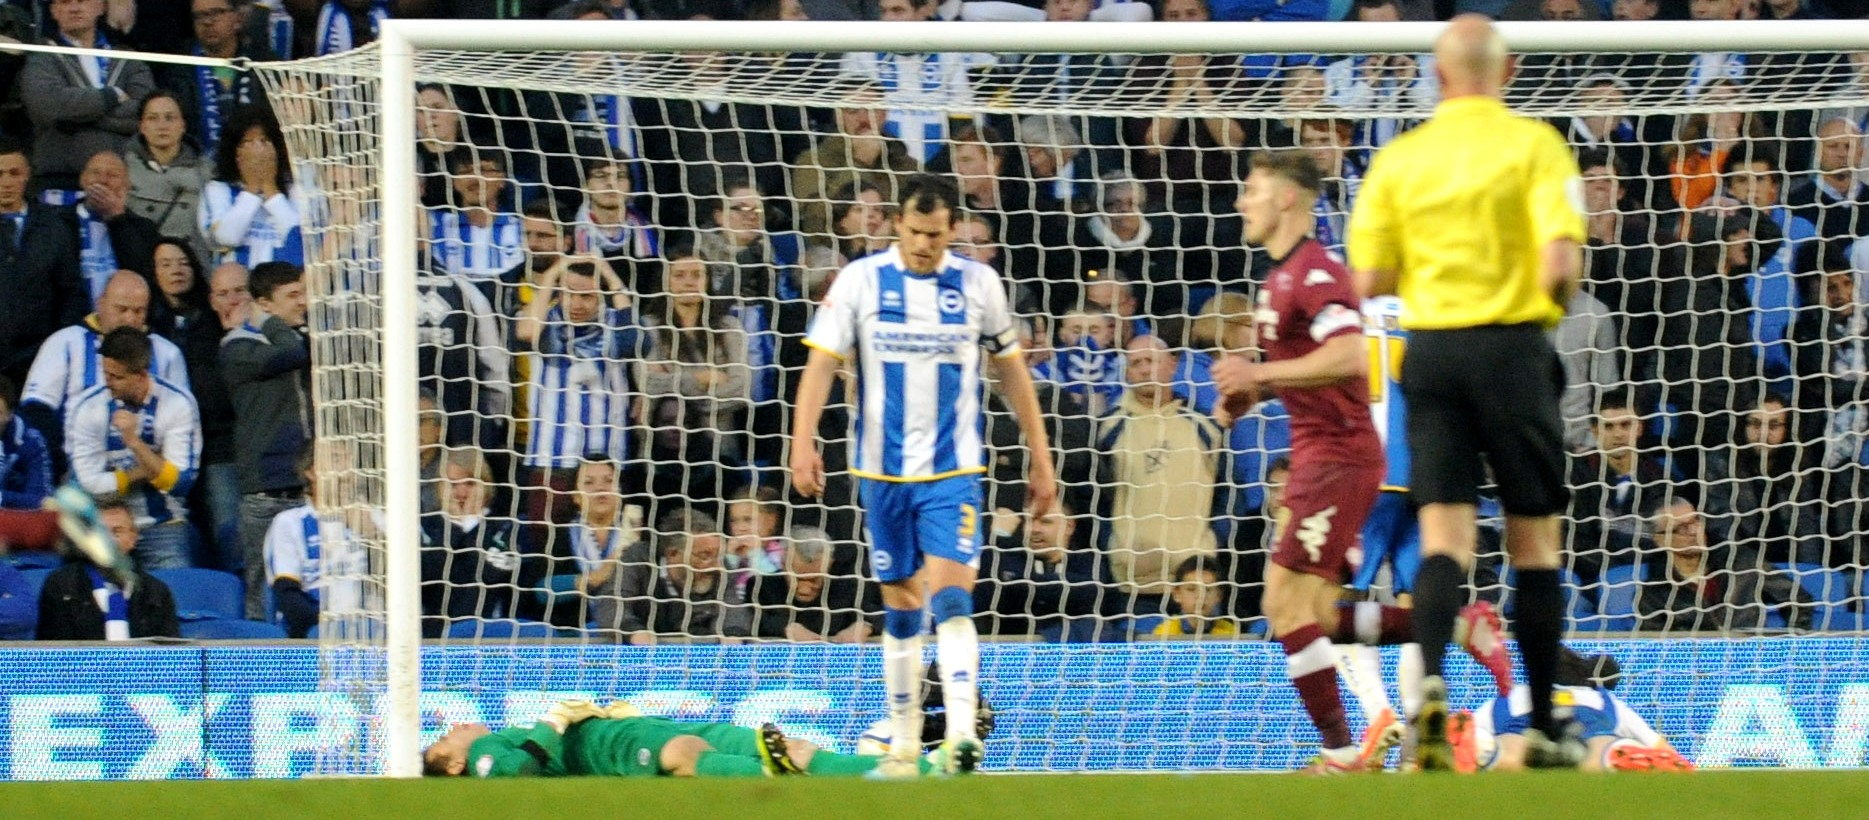 Tomasz Kuszczak is flat out after Derby's second goal - but can Albion pick themselves up?